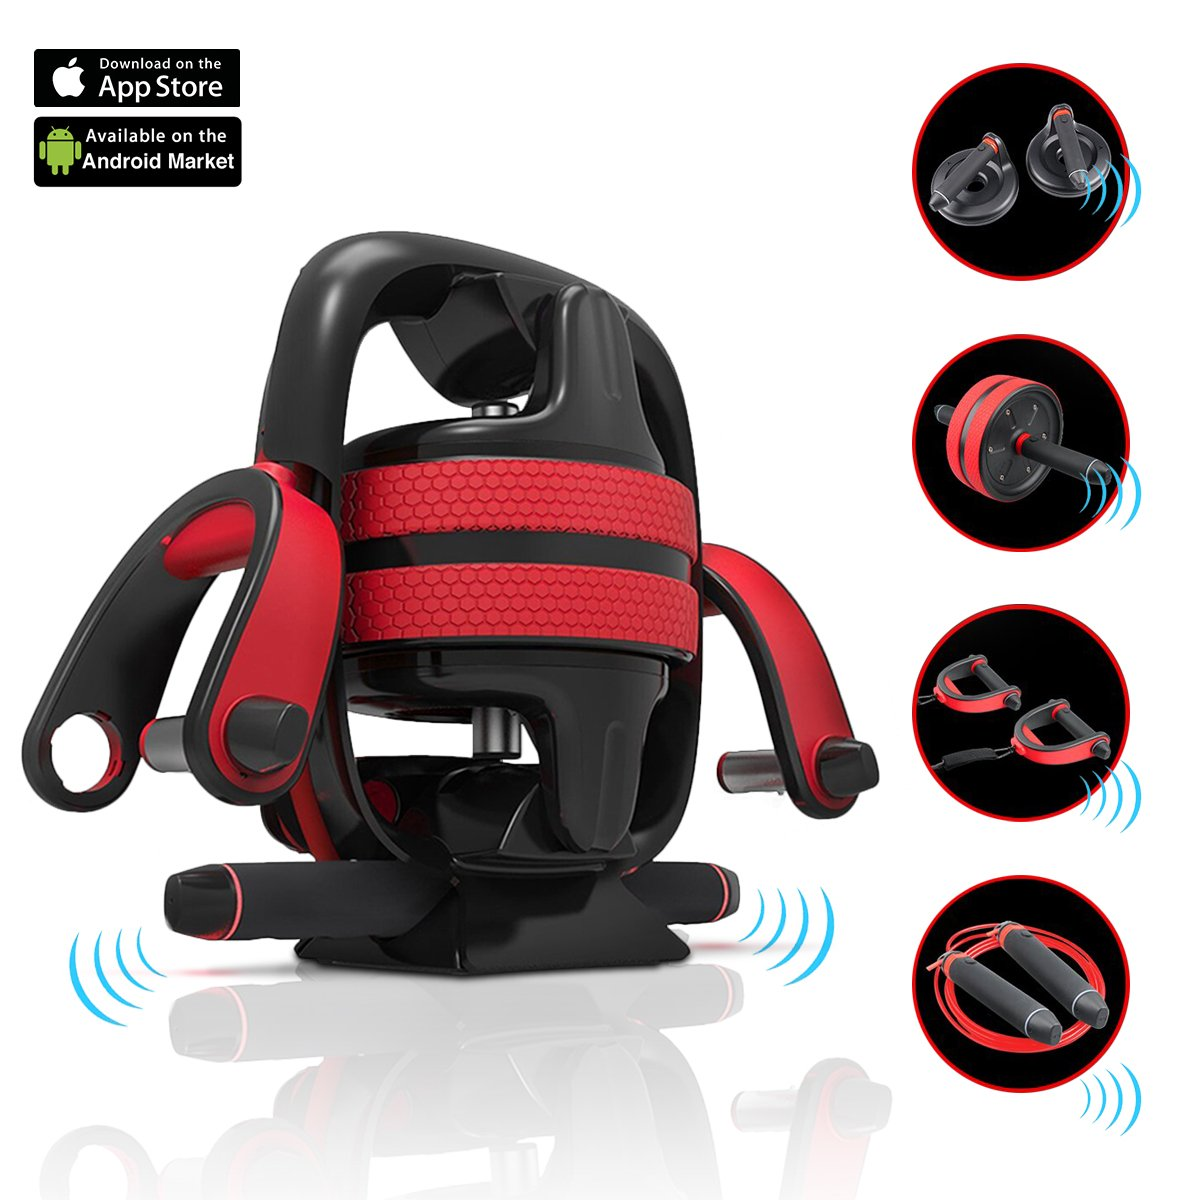 【HARDA Home Fitness】Smart Personal Gym Intelligent All-in-one Workout Equipment